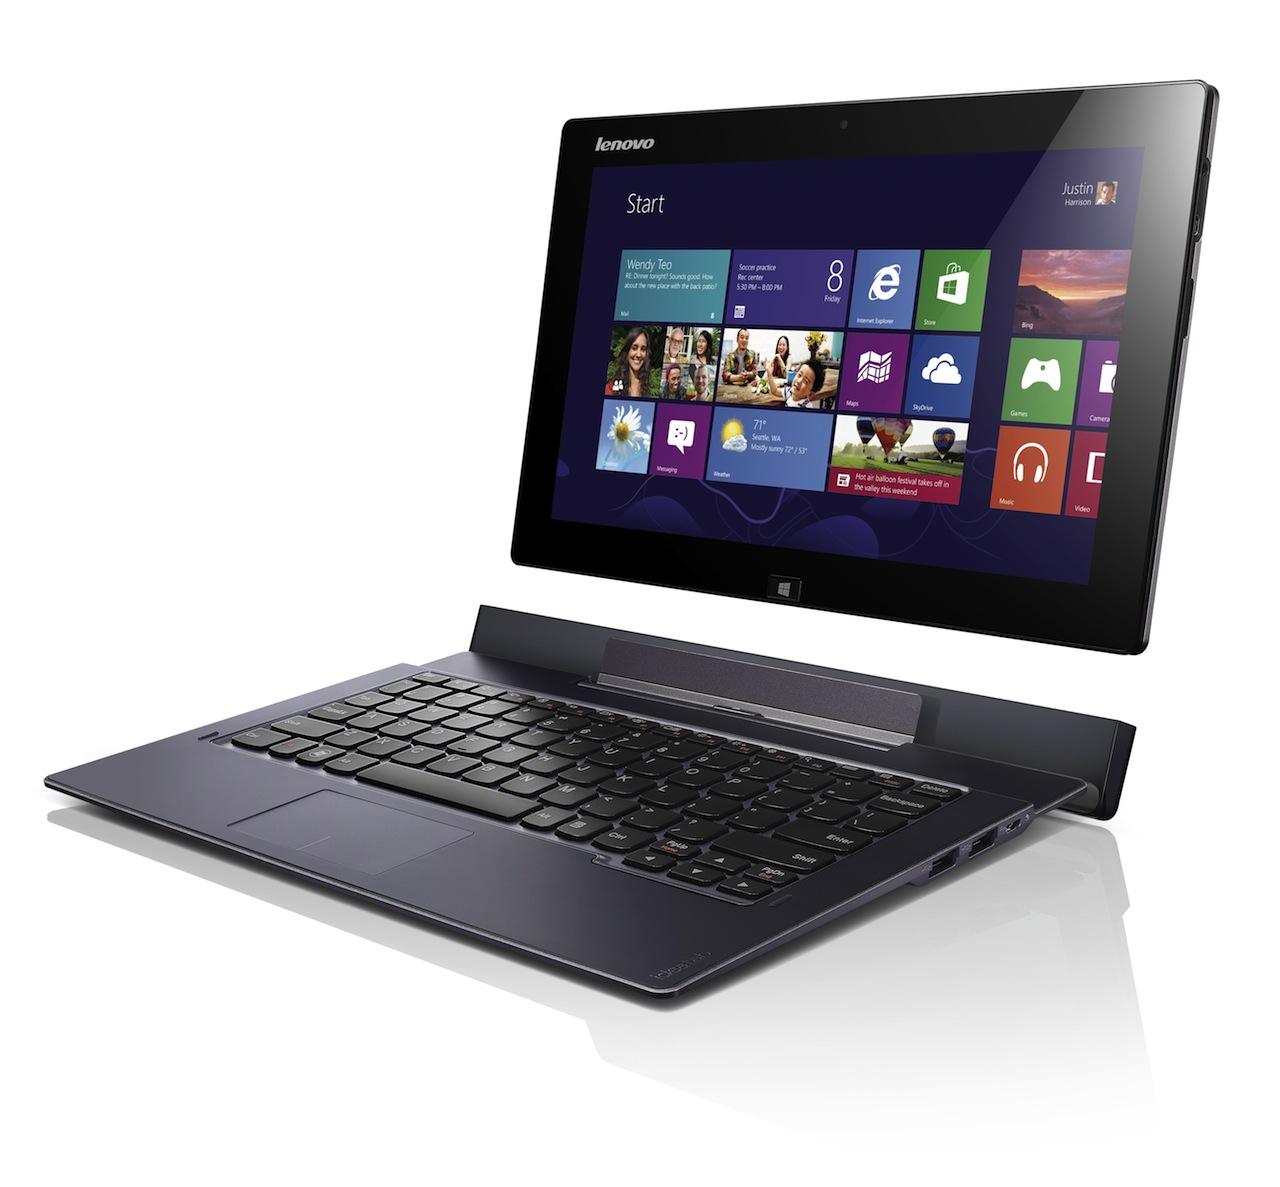 Lenovo Unveils Slew Of Tablets With Keyboards  Laptops With Touchscreens